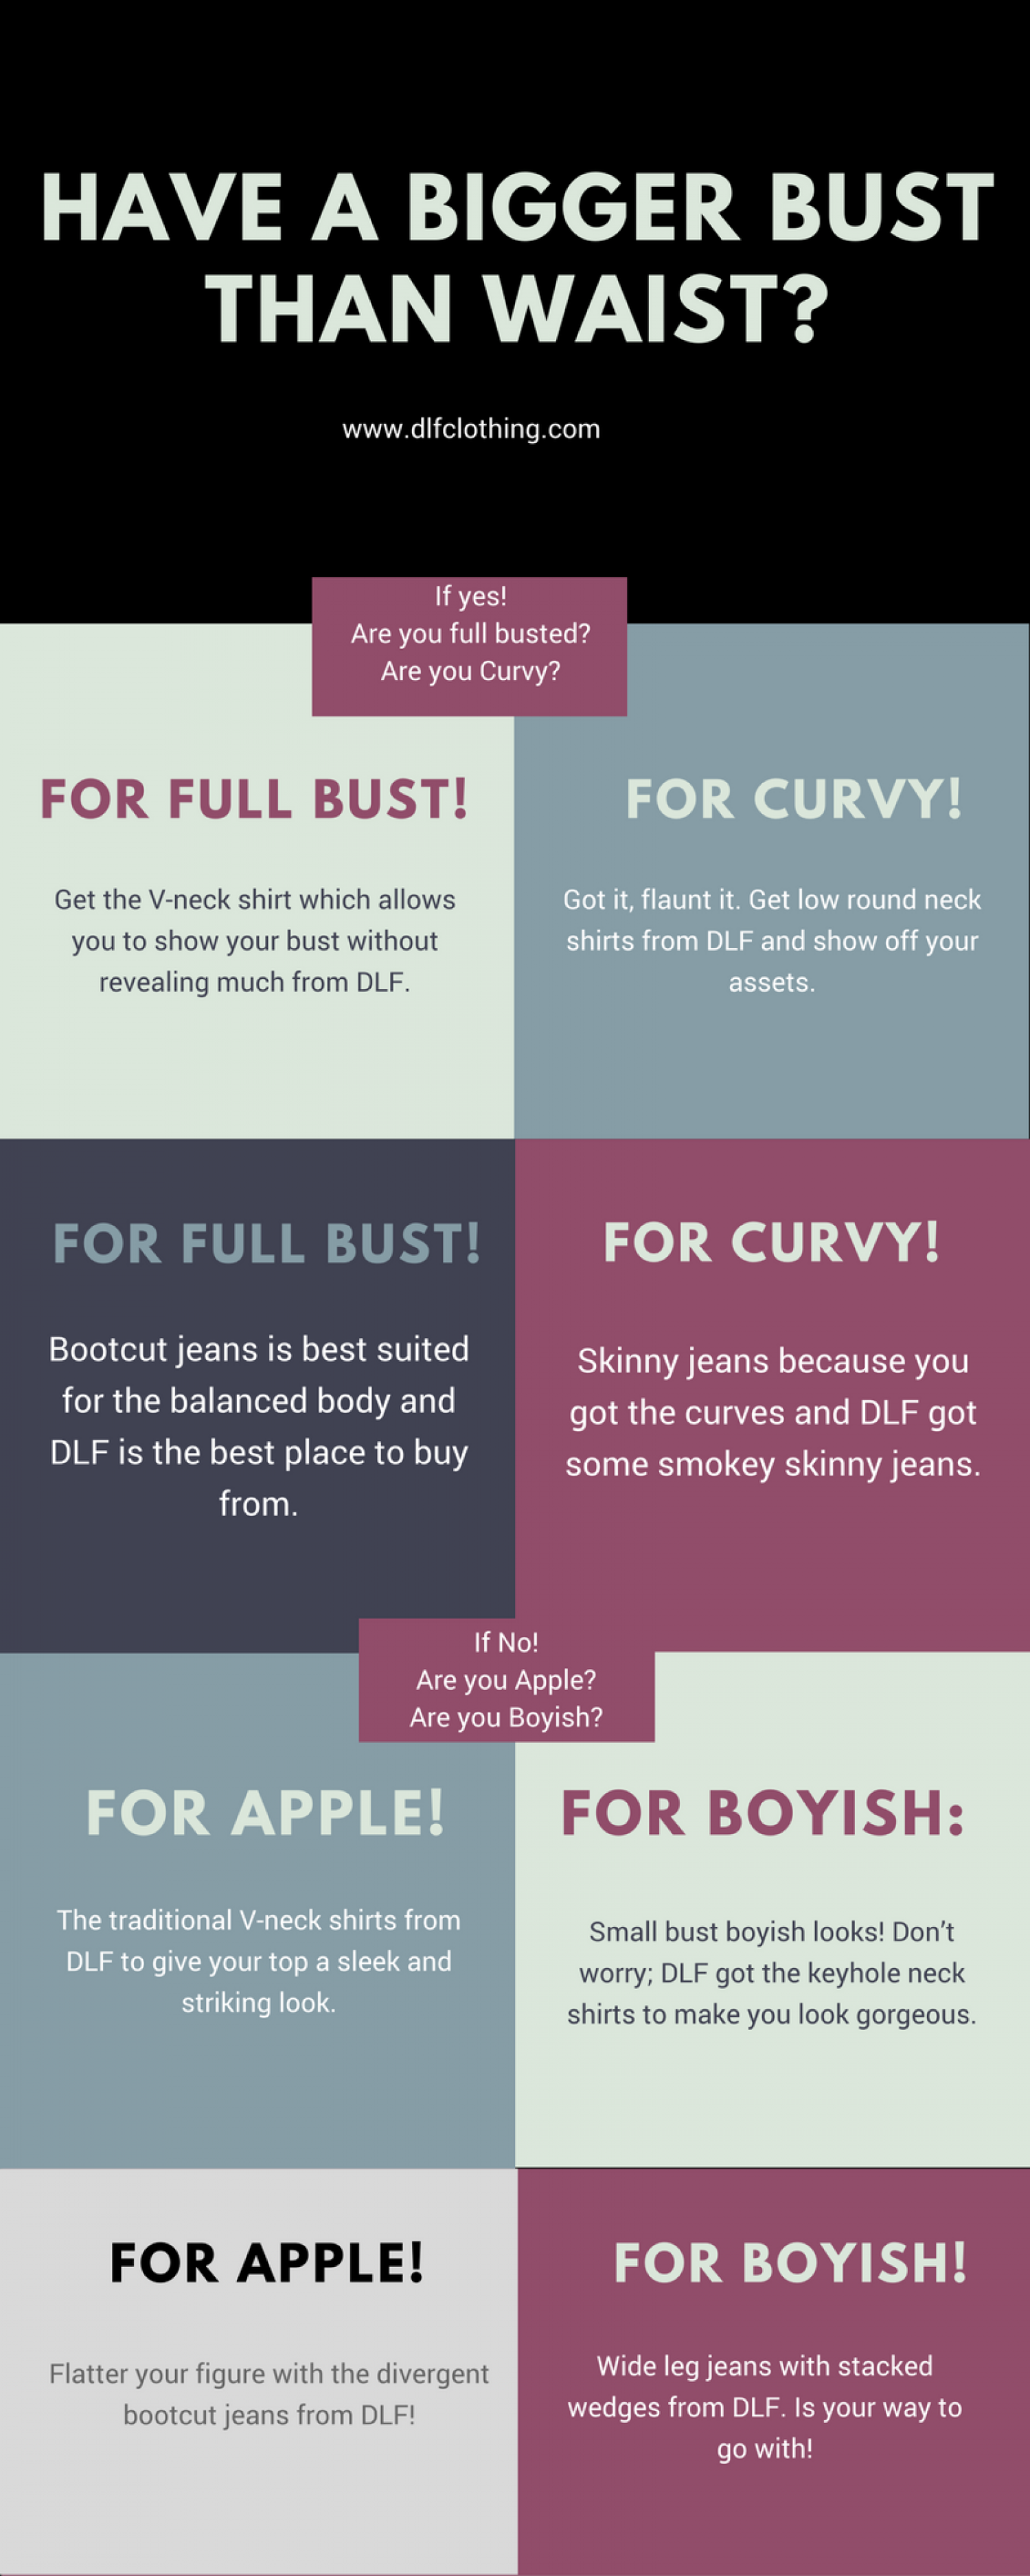 Have a bigger bust than waist? Infographic